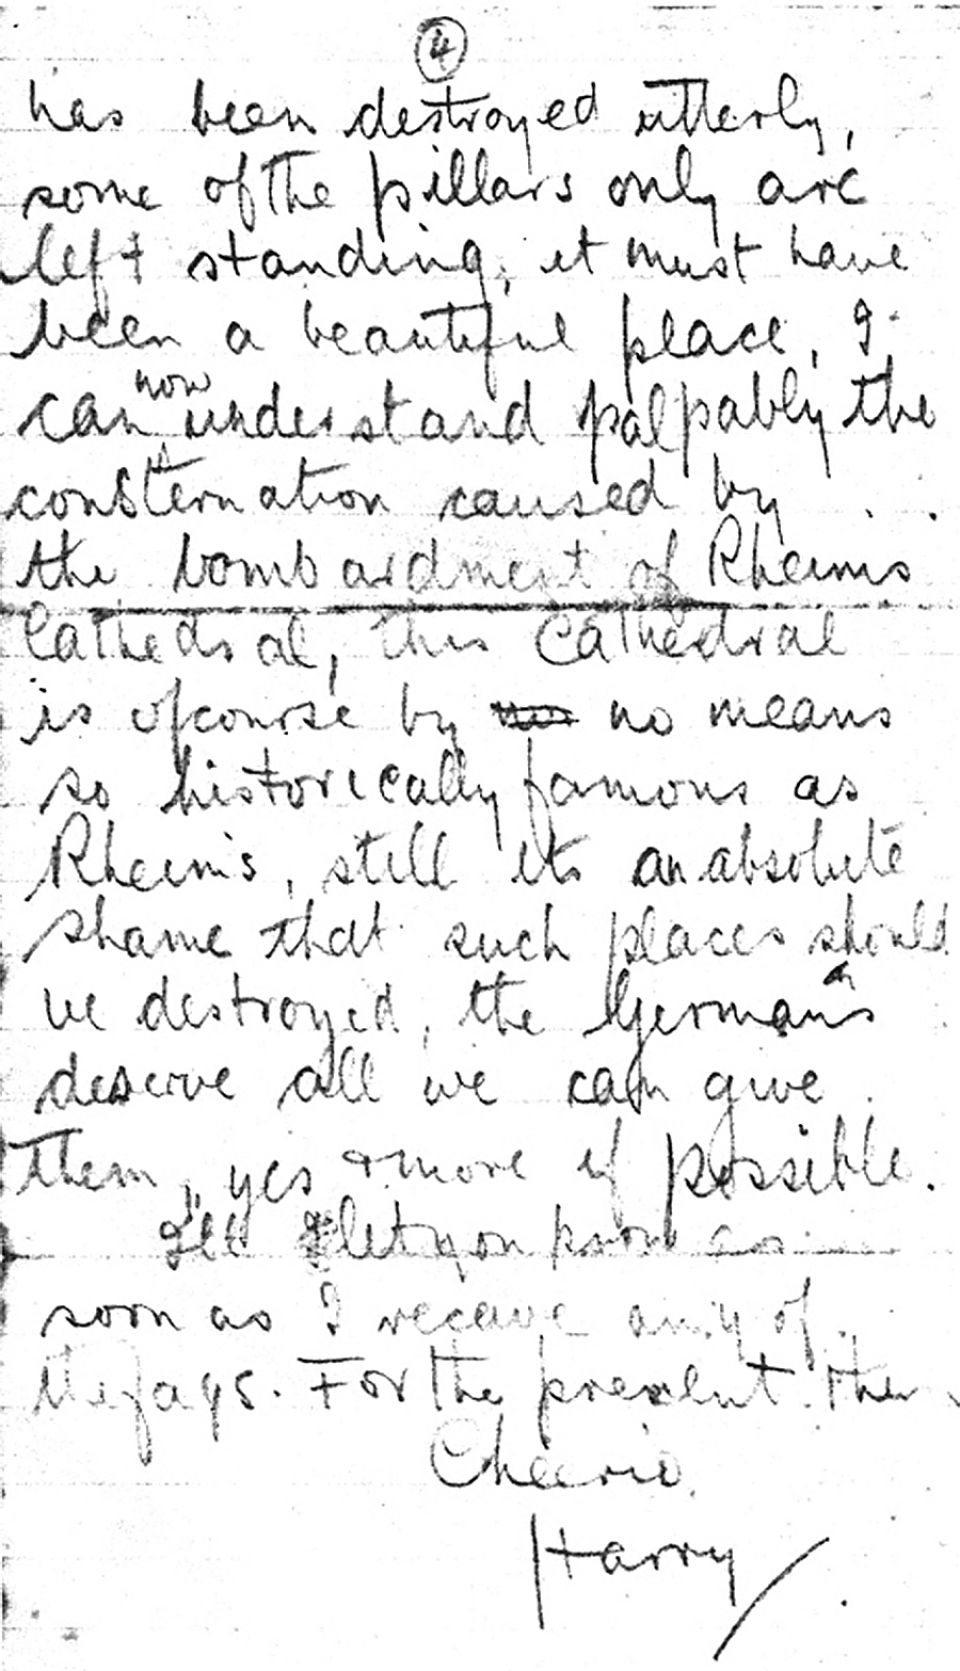 A letter from Henry Moore to his former art teacher, Alice Gostick, Oct 6 1917. Page 4.